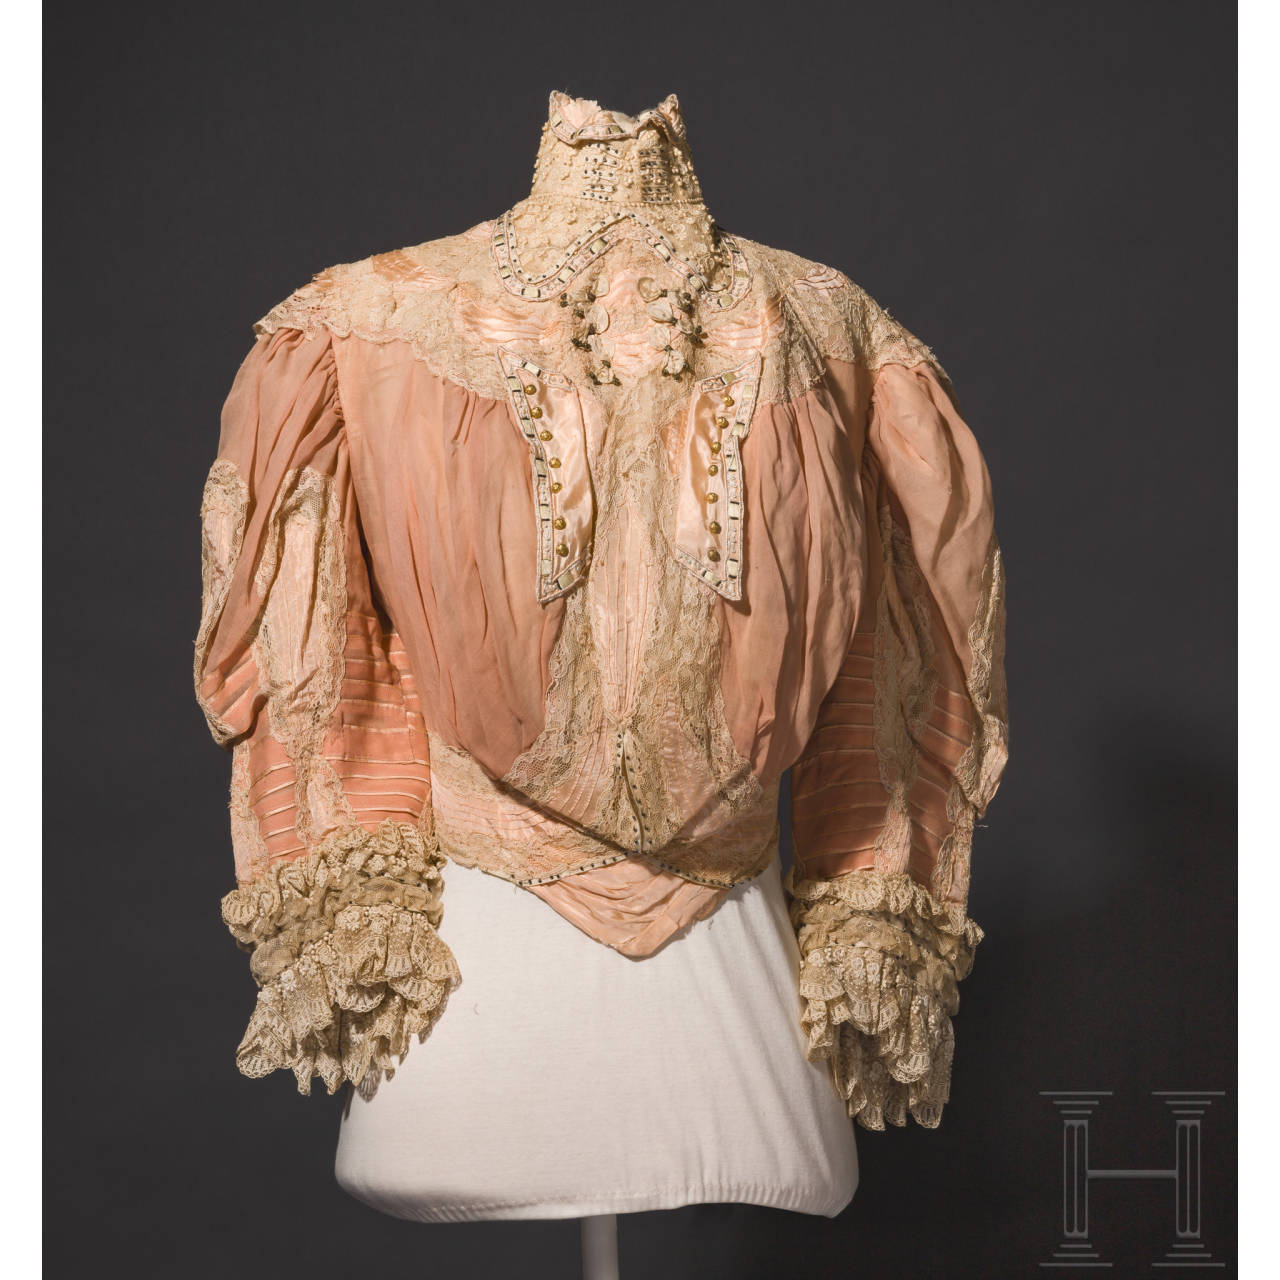 Empress Elisabeth of Austria – a two-piece summer dress in salmon pink from Corfu